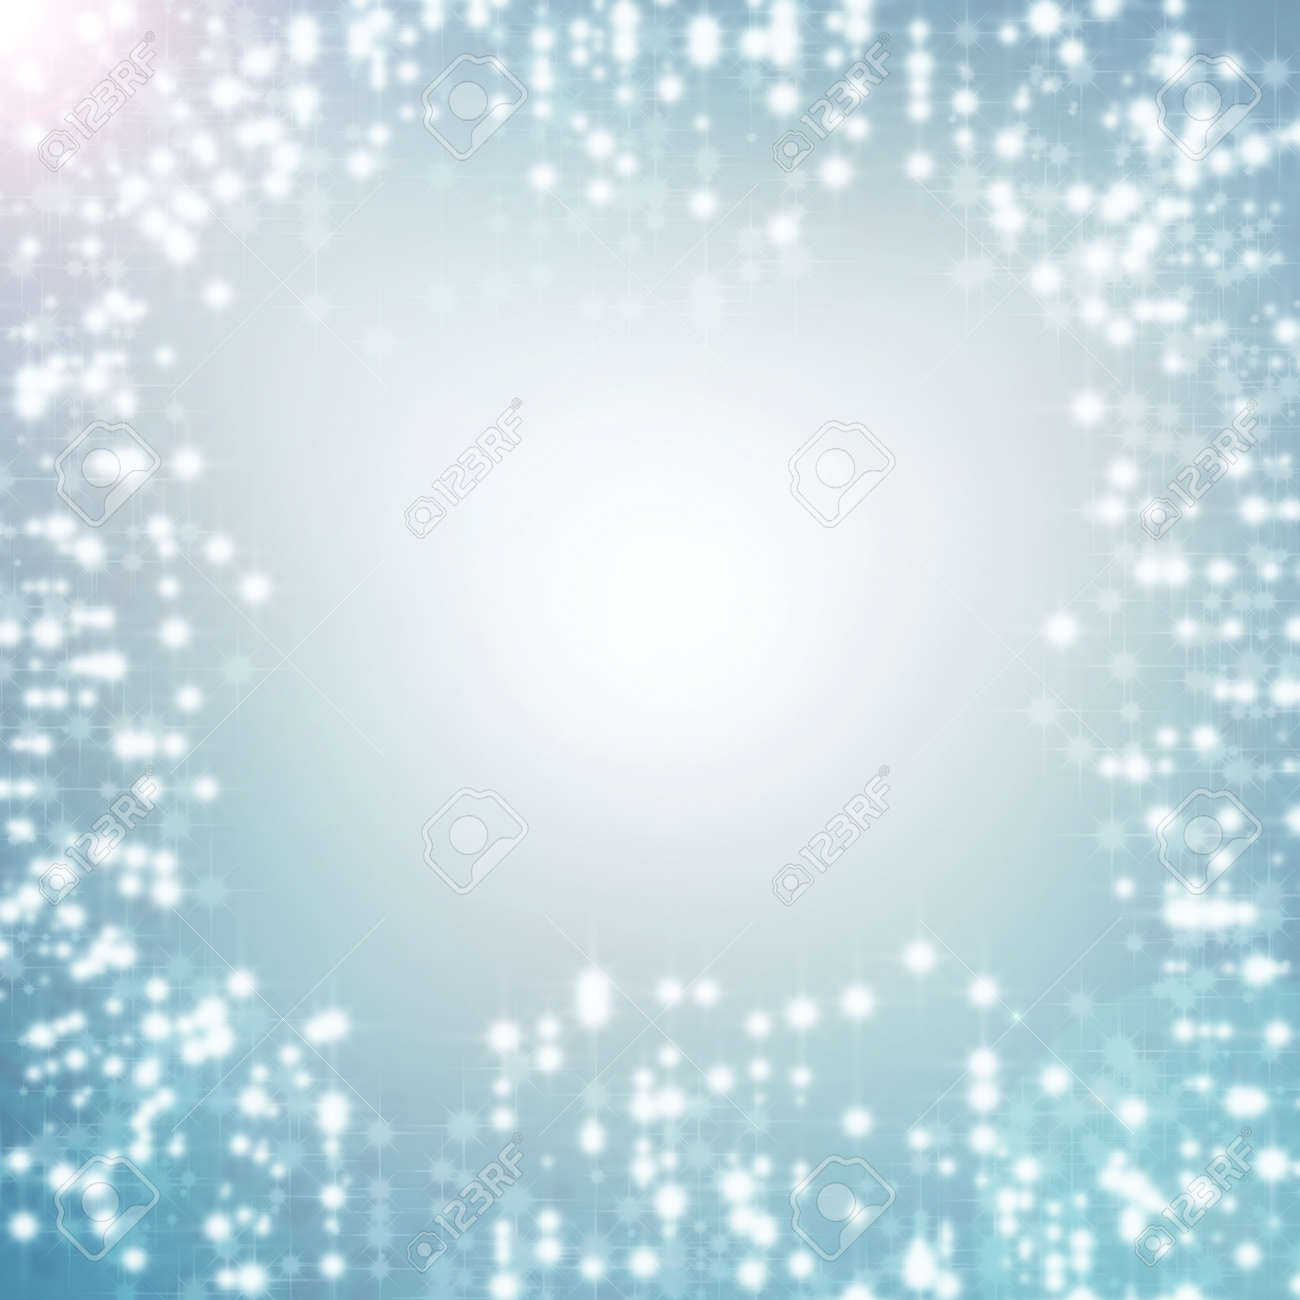 Blue Abstract Background And White Christmas Lights, Delicate ...